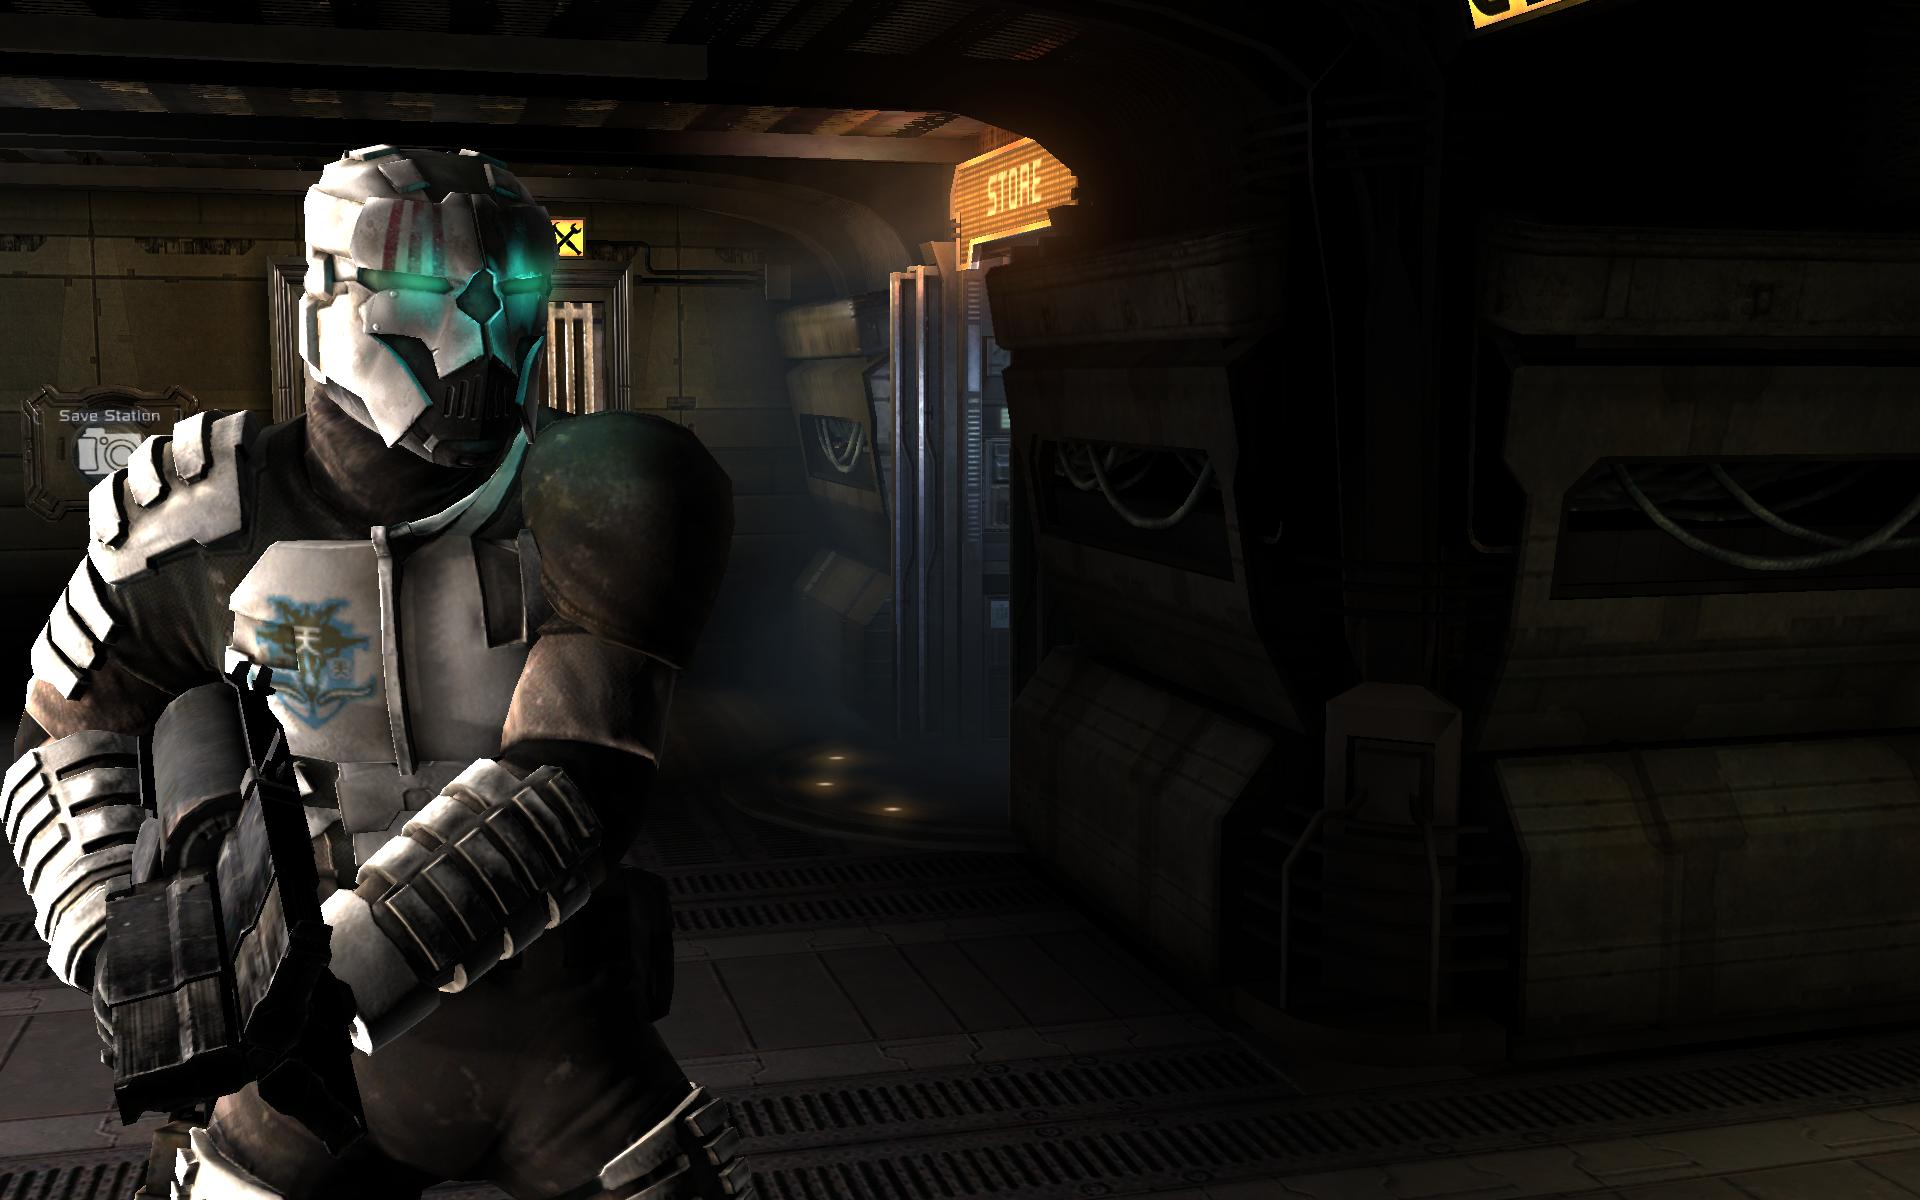 Dead space hd wallpaper background image 1920x1200 - Dead space mobile wallpaper ...